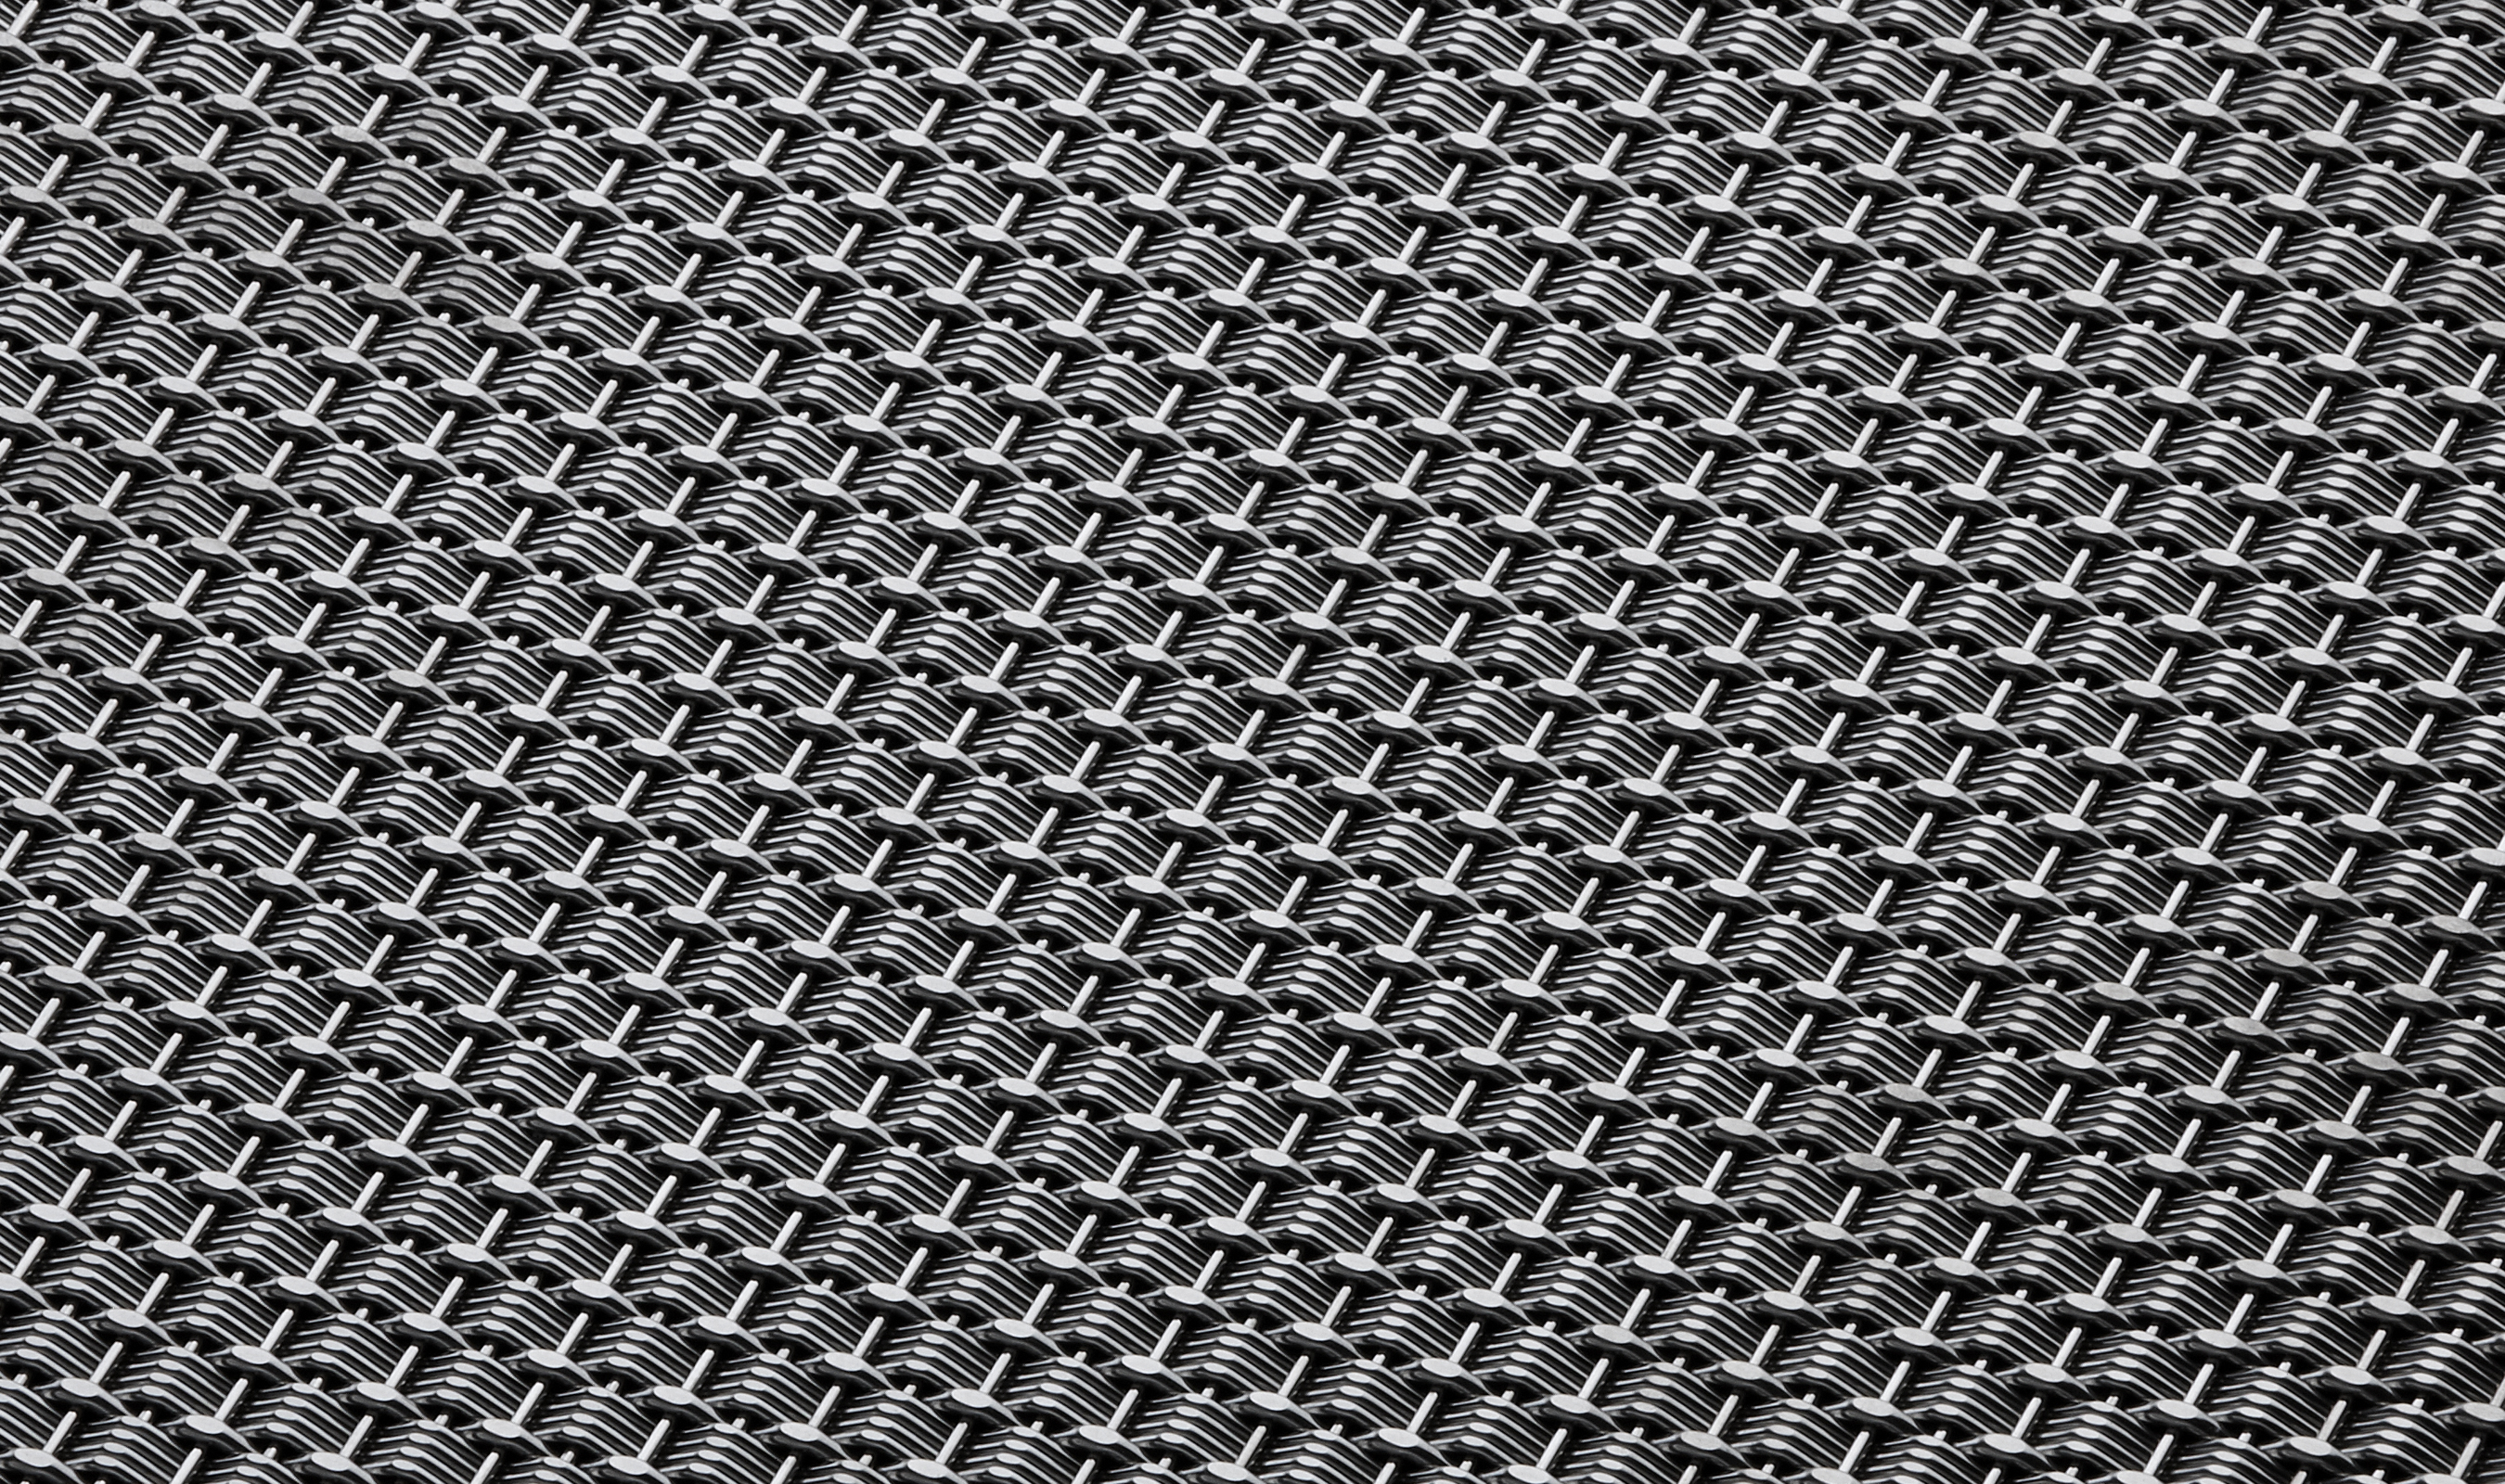 DS-15 Architectural wire mesh pattern